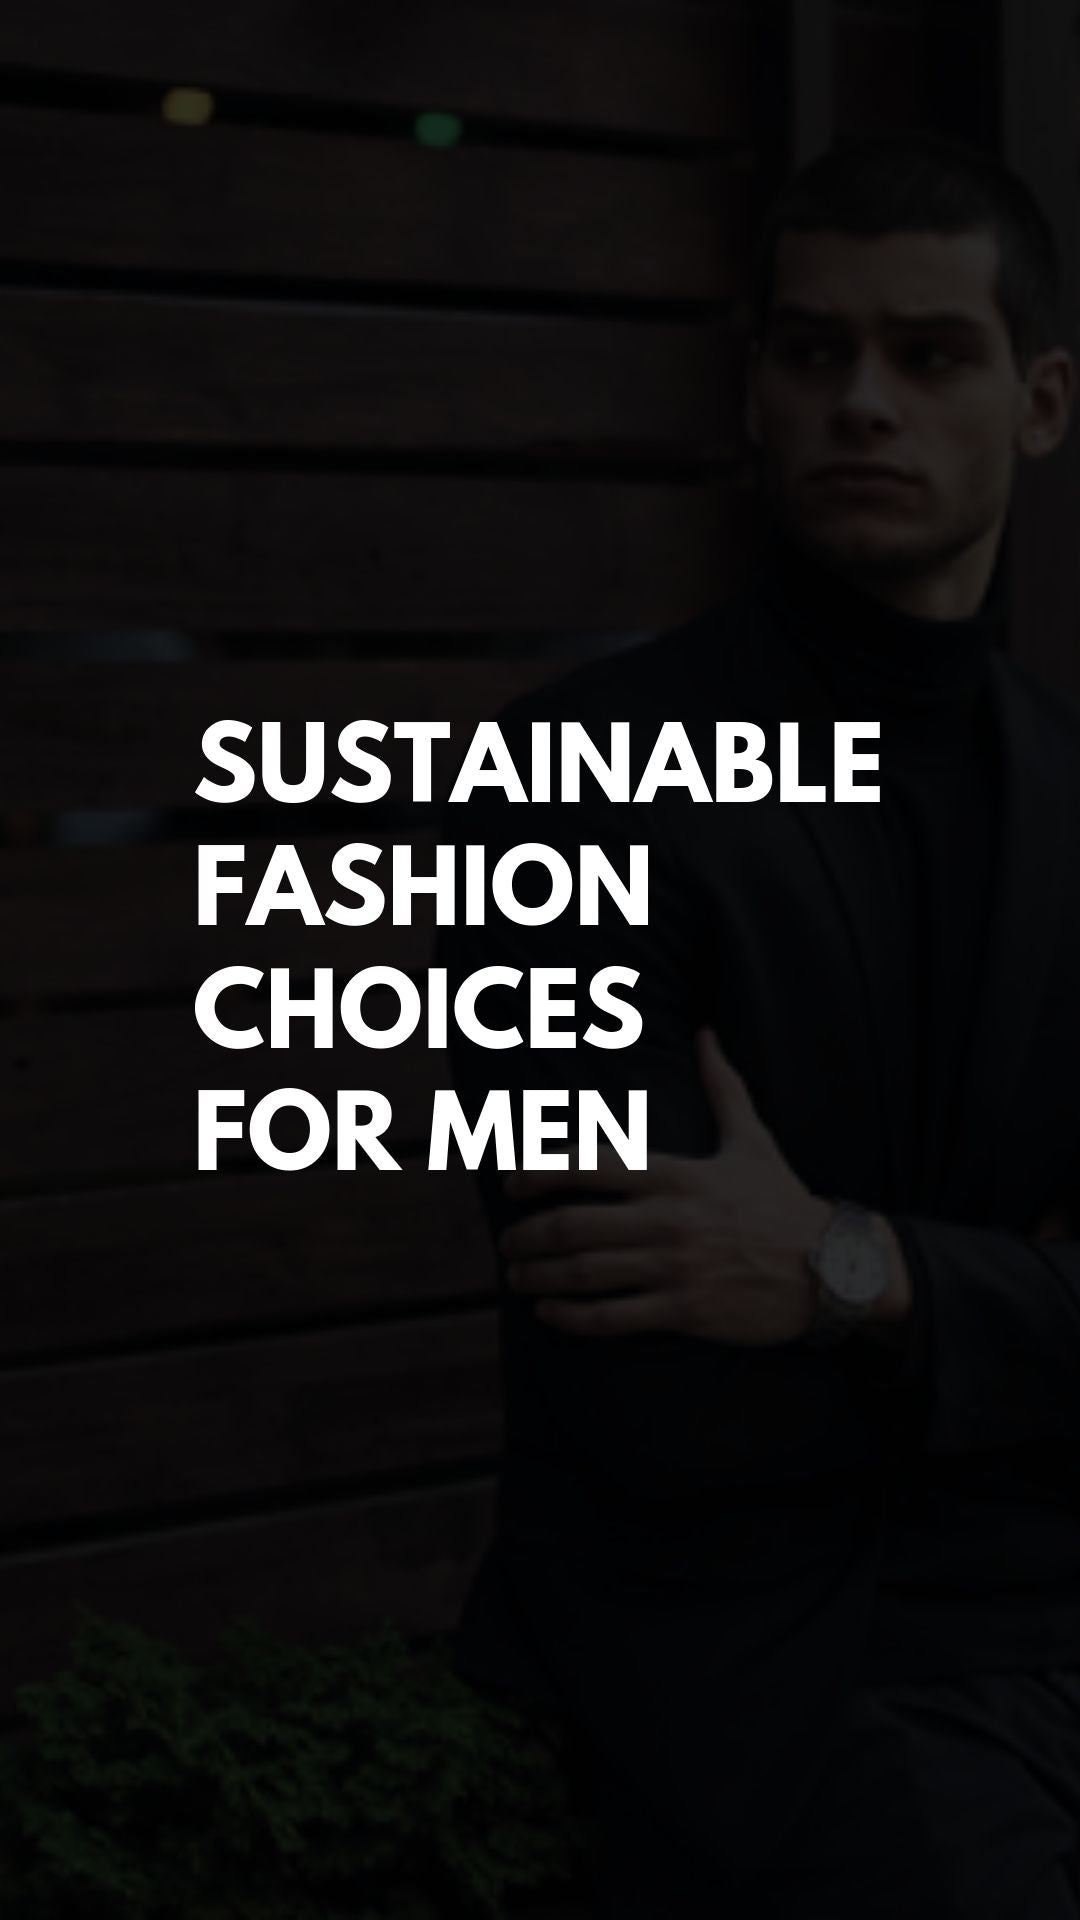 Sustainable Fashion Choices for Men